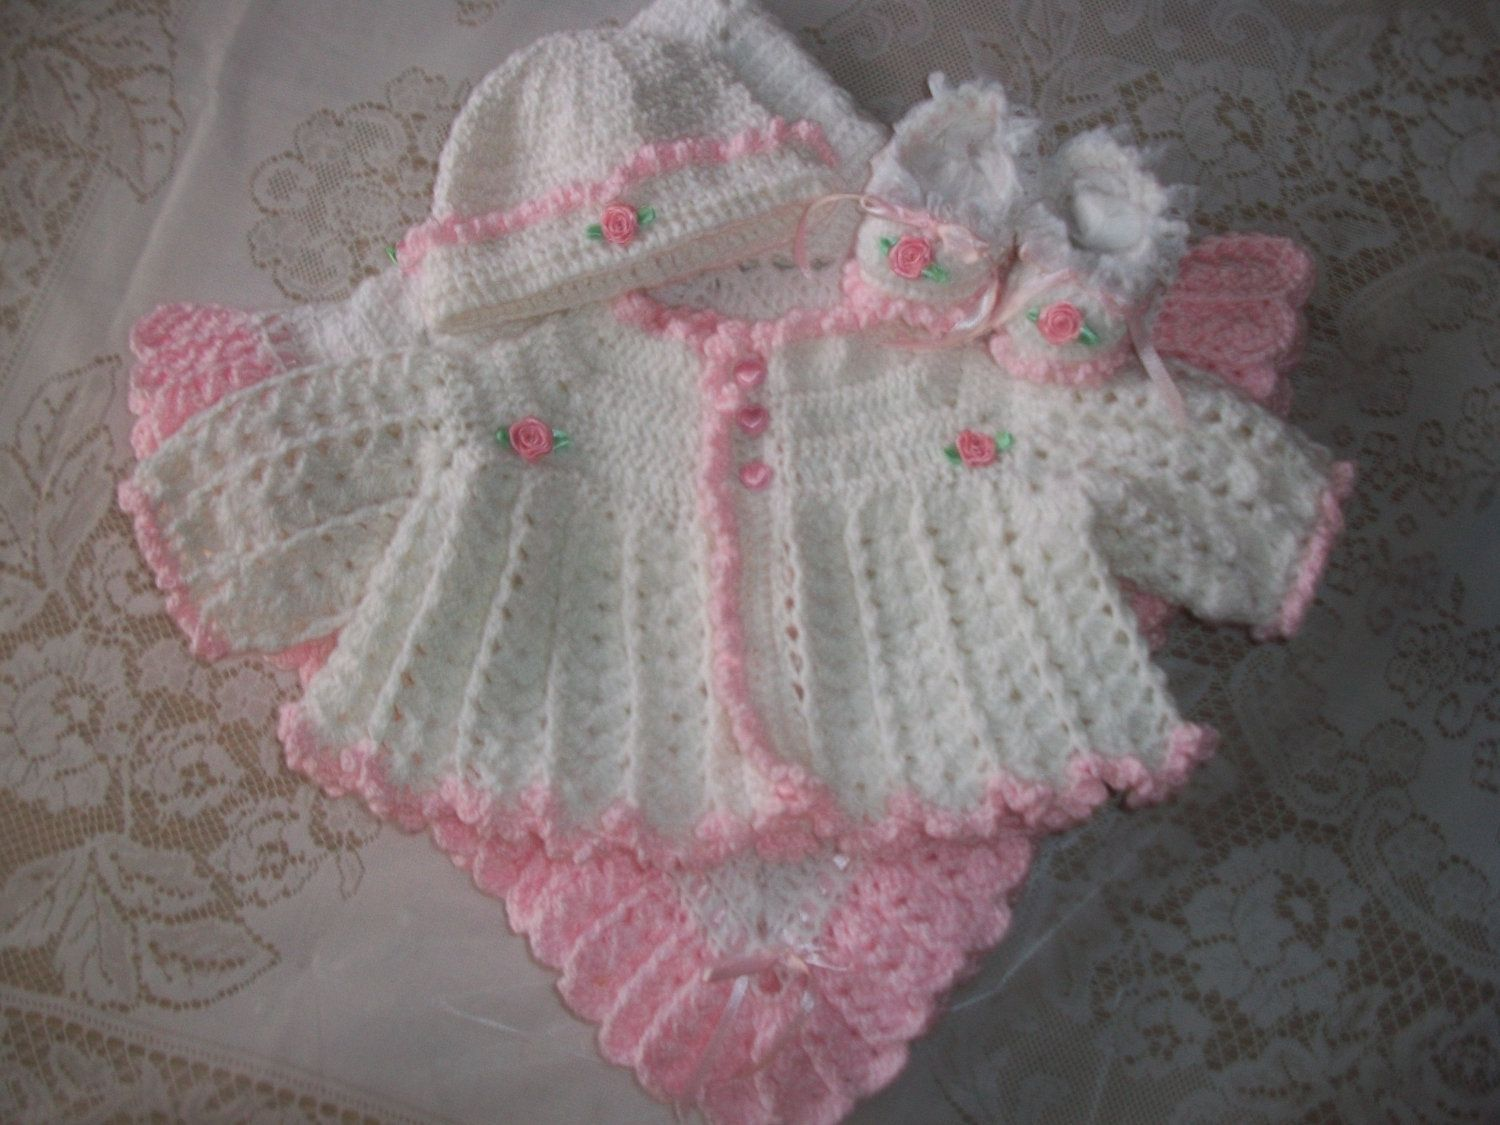 d4fd2e7c0 Crochet Baby Girl Pink And White Sweater Set Bonnet Booties and ...